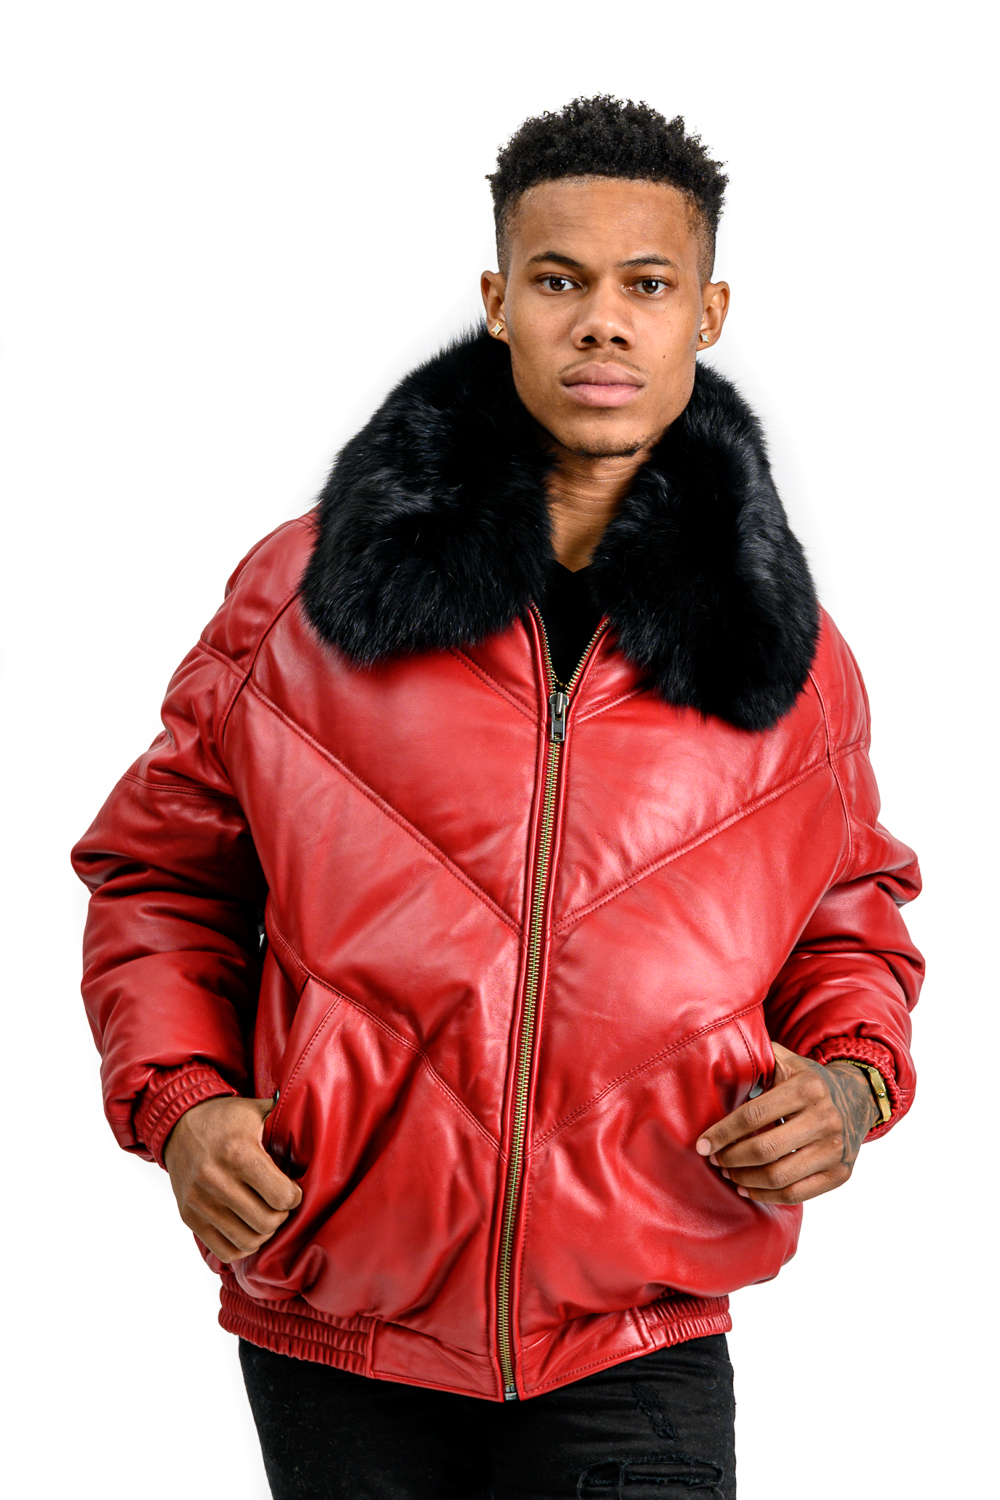 M43 2 Mans Red Puffer with Fox Fur